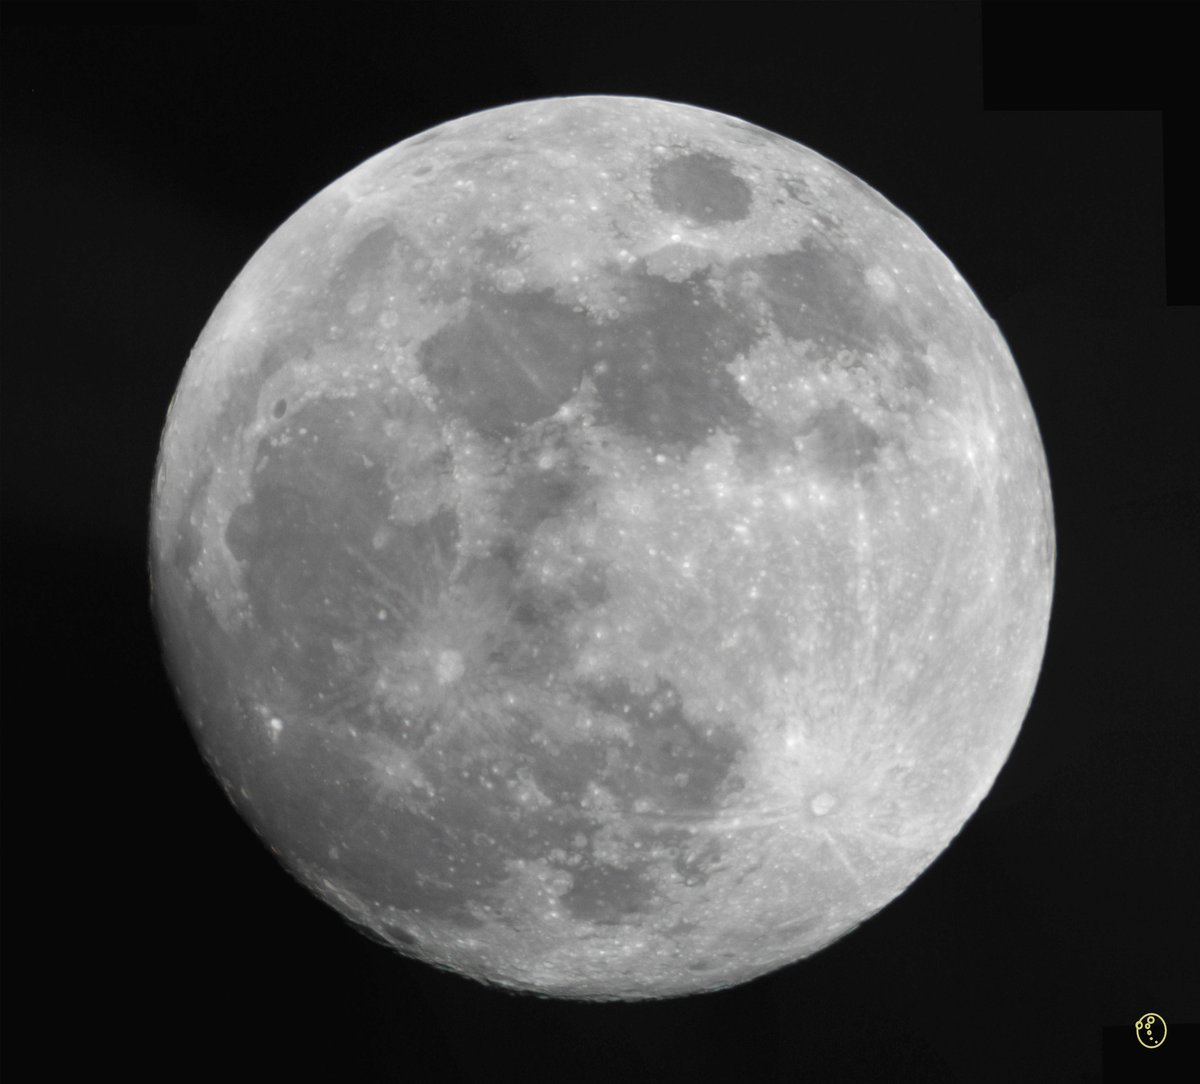 neanderthal on a plain on Twitter: Waxing Gibbous from 2019 08 14, 8in Dob + Canon DSLR + Barlow 40 images aligned and a bit of gimp magic, this one had ISO set to 200 and the exposure to 1/200 #myphoto #moon…